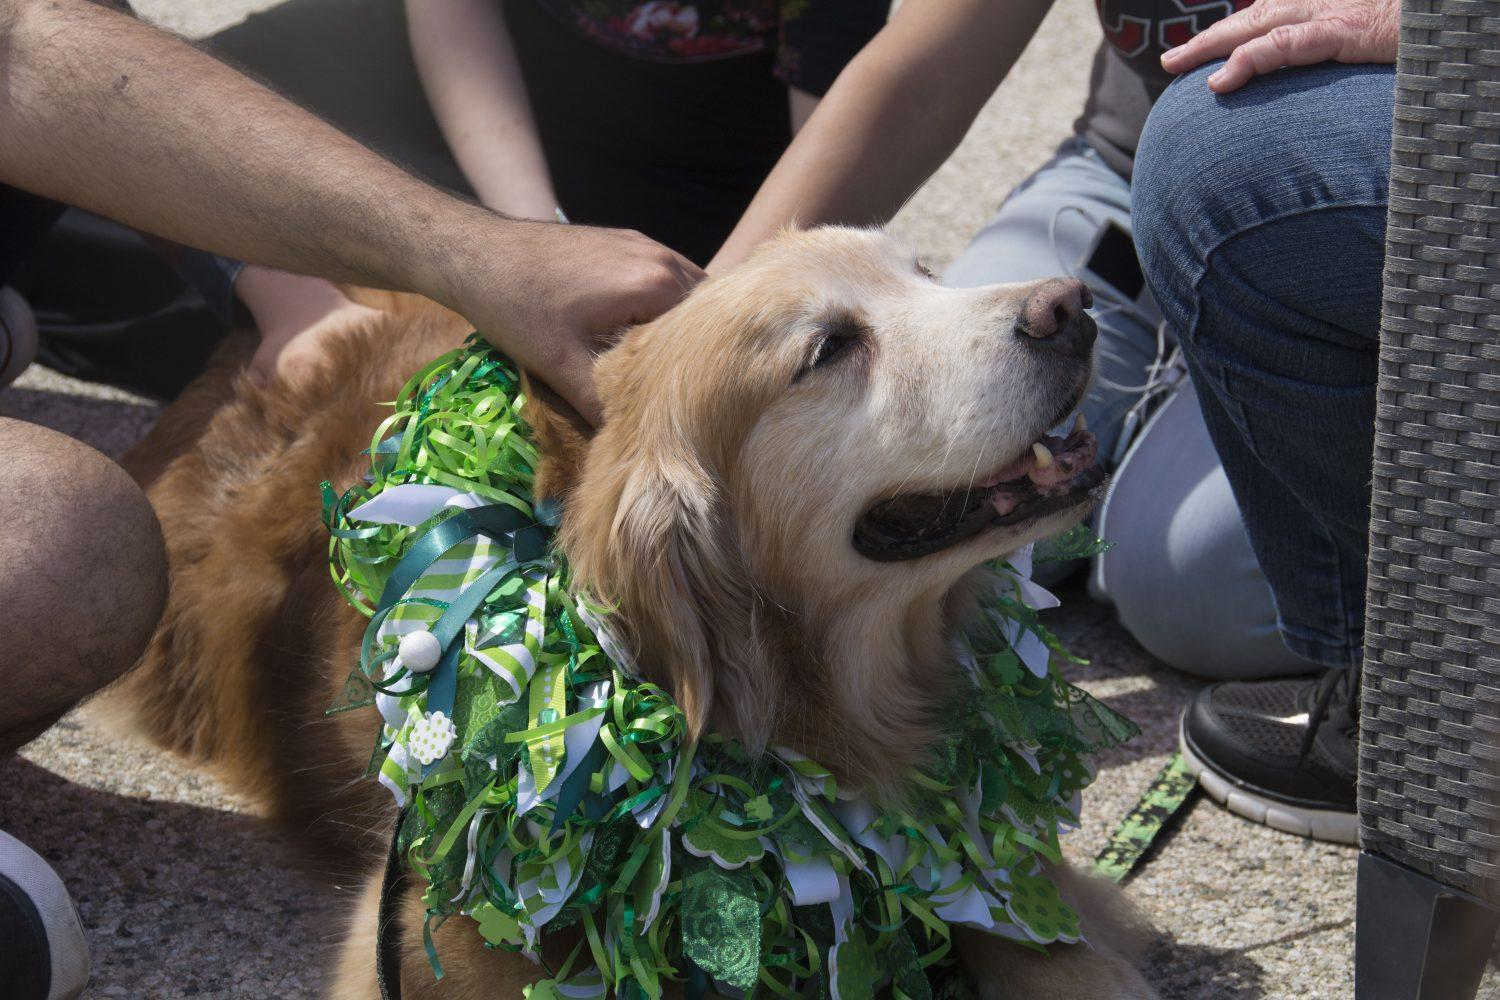 CSUN+students+went+to+the+Oasis+center+March+15+to+pet+dogs+like+Hank%2C+a+10-year-old+golden+retriever%2C+cancer+survivor+and+therapy+dog.+Photo+credit%3A+Nicollette+Ashtiani